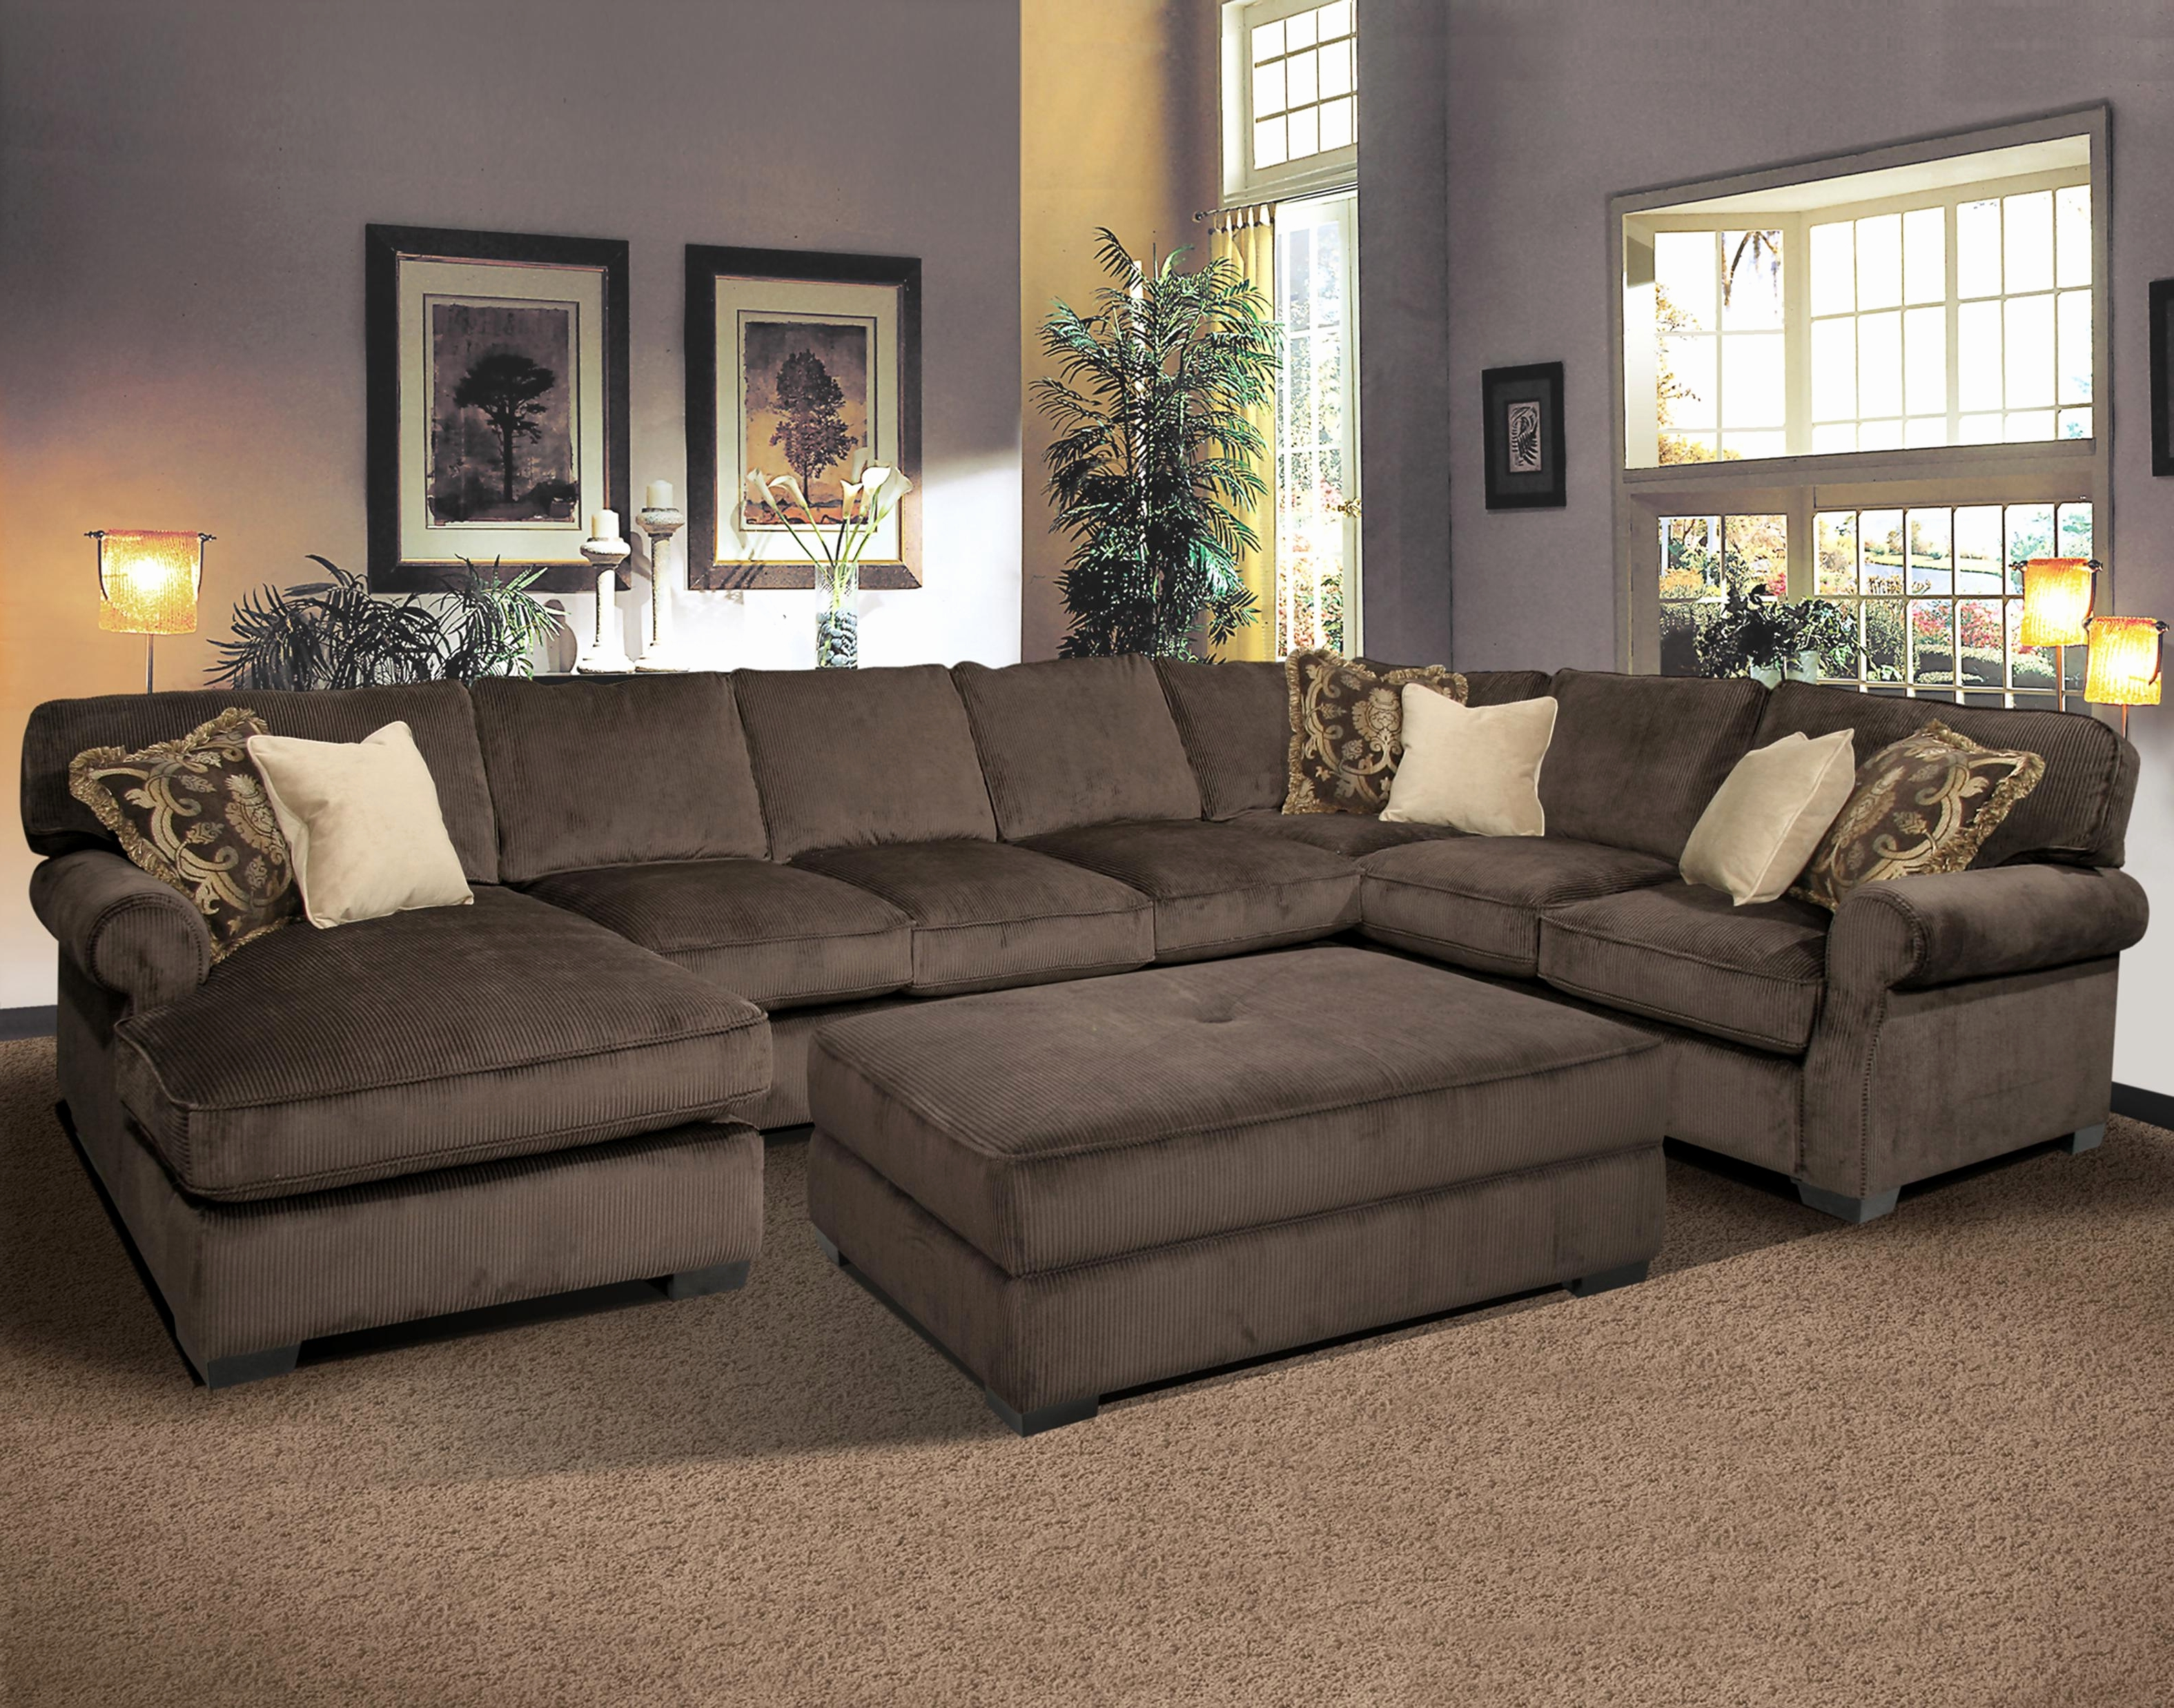 Clearance Sectional Sofas Pertaining To Fashionable Best Modular Sectional Sofa Good Sofa Elegant Clearance Sectional (Gallery 9 of 20)